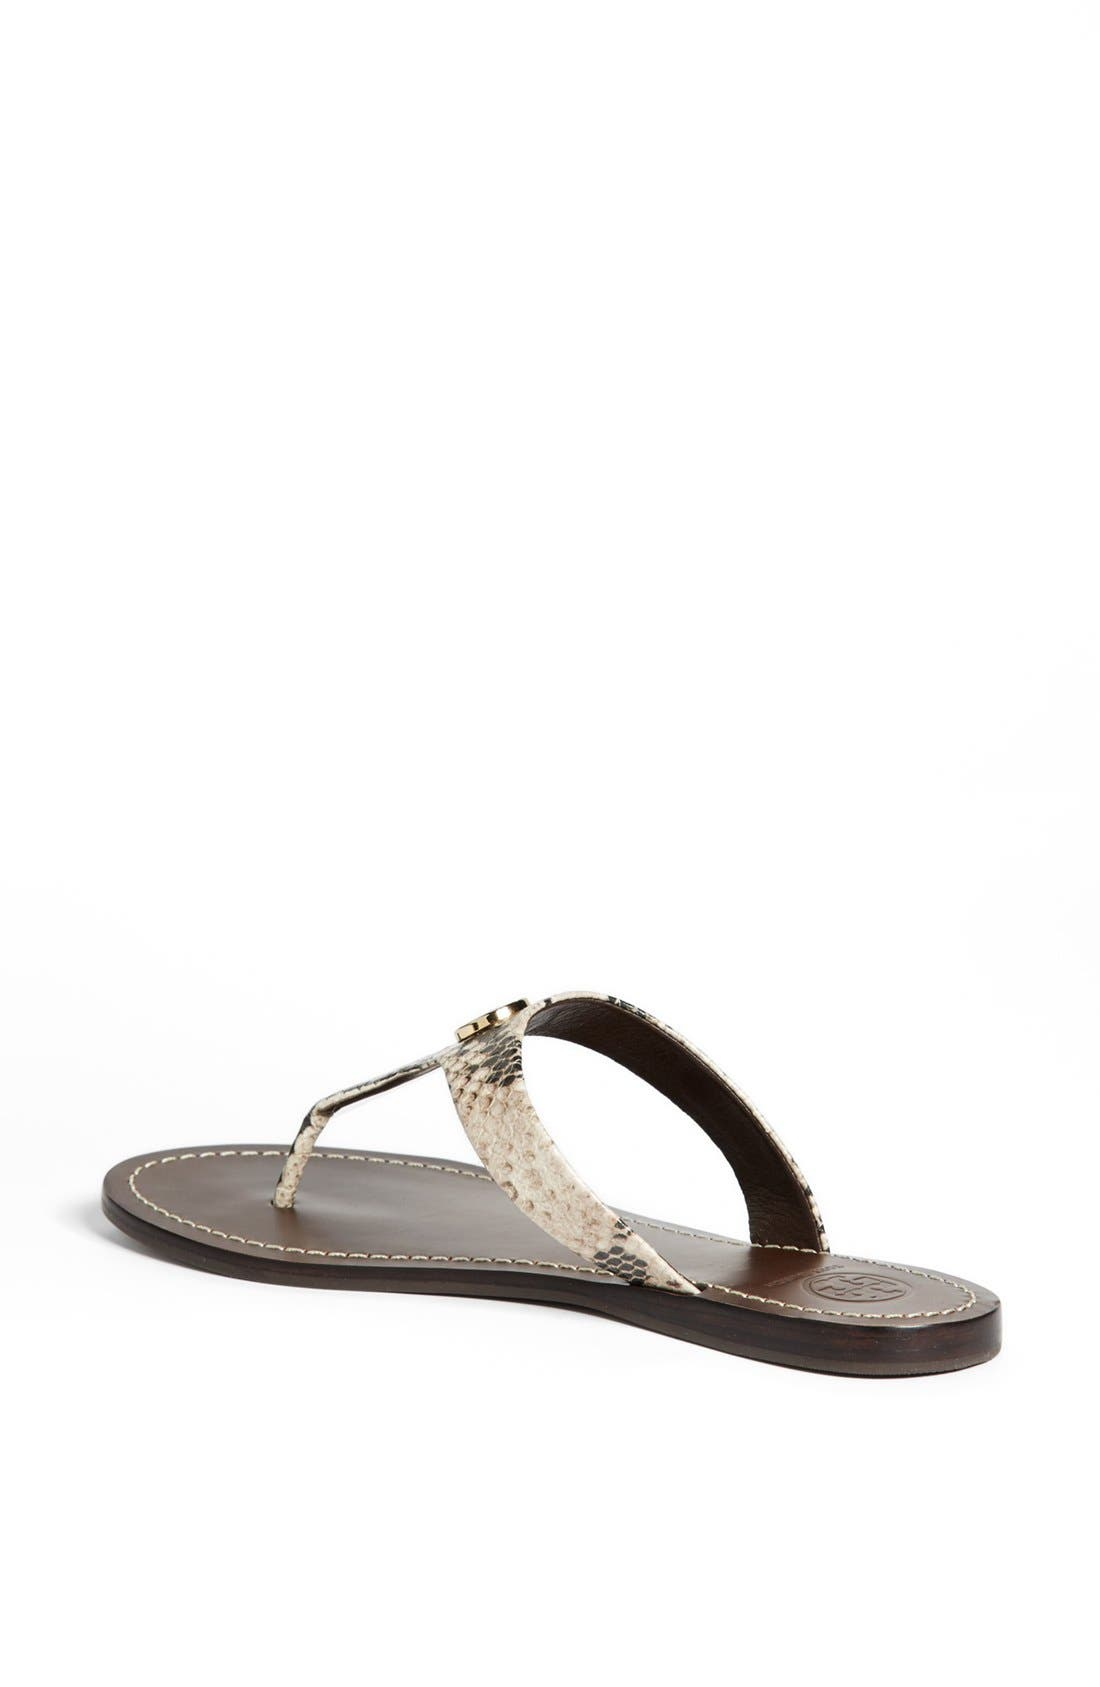 Alternate Image 2  - Tory Burch 'Cameron' Thong Sandal